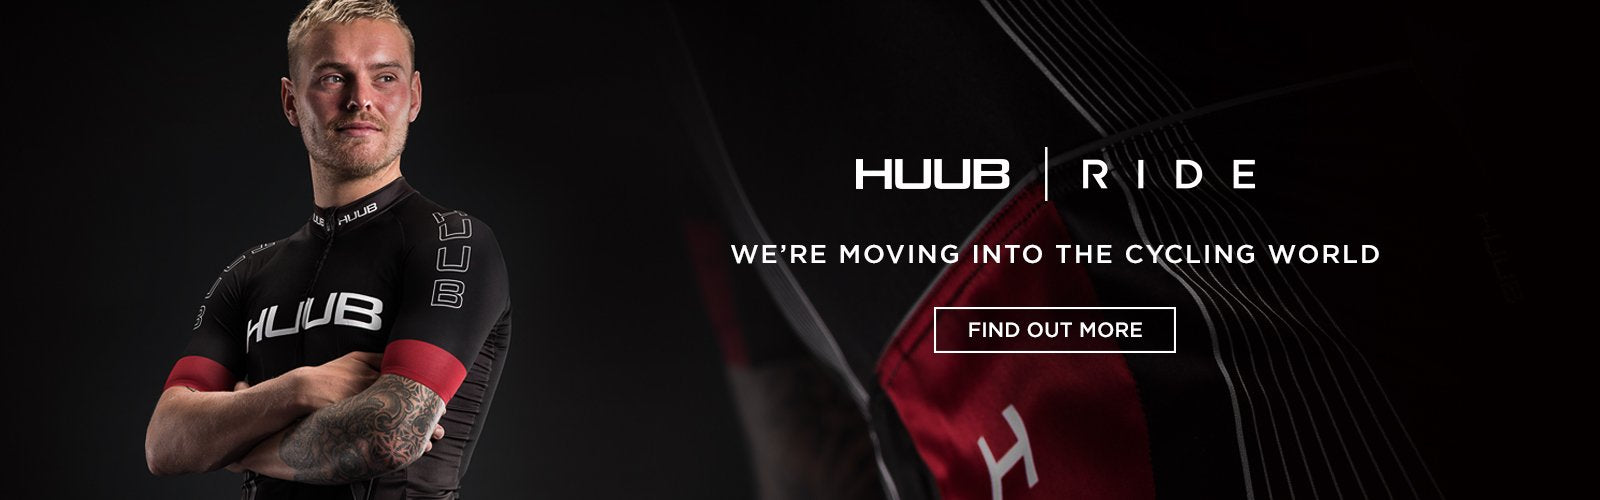 HUUB Ride~: We're moving into the cycling world